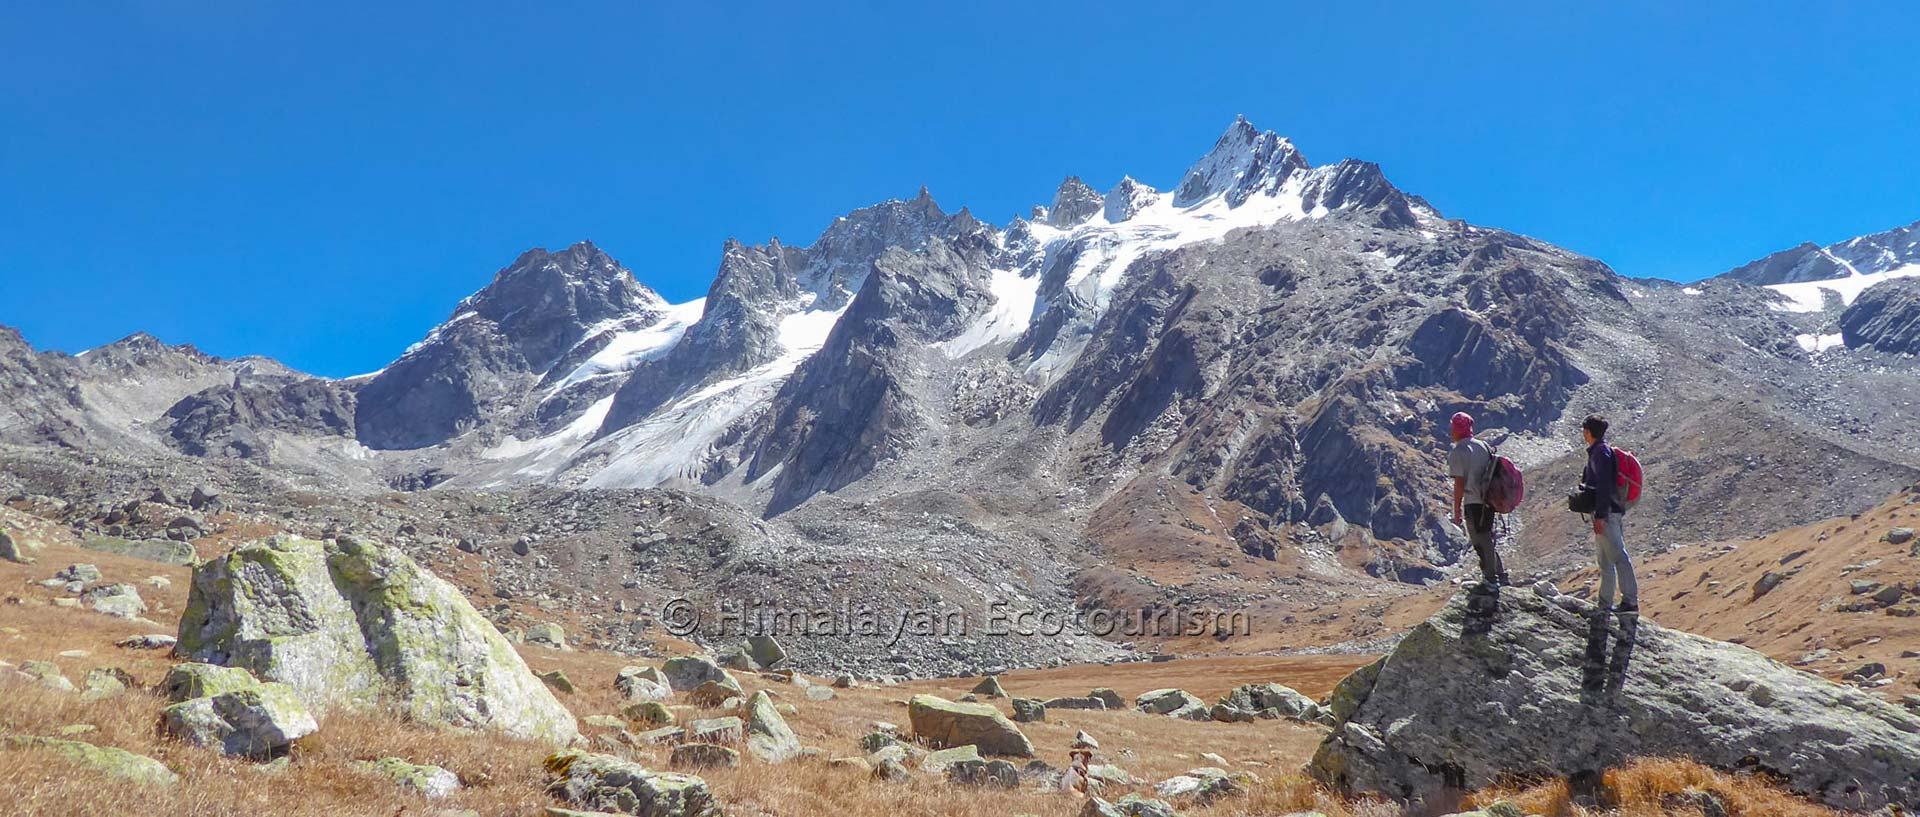 Tirth trek in the Great Himalayan National Park GHNP - On the way to Tirth